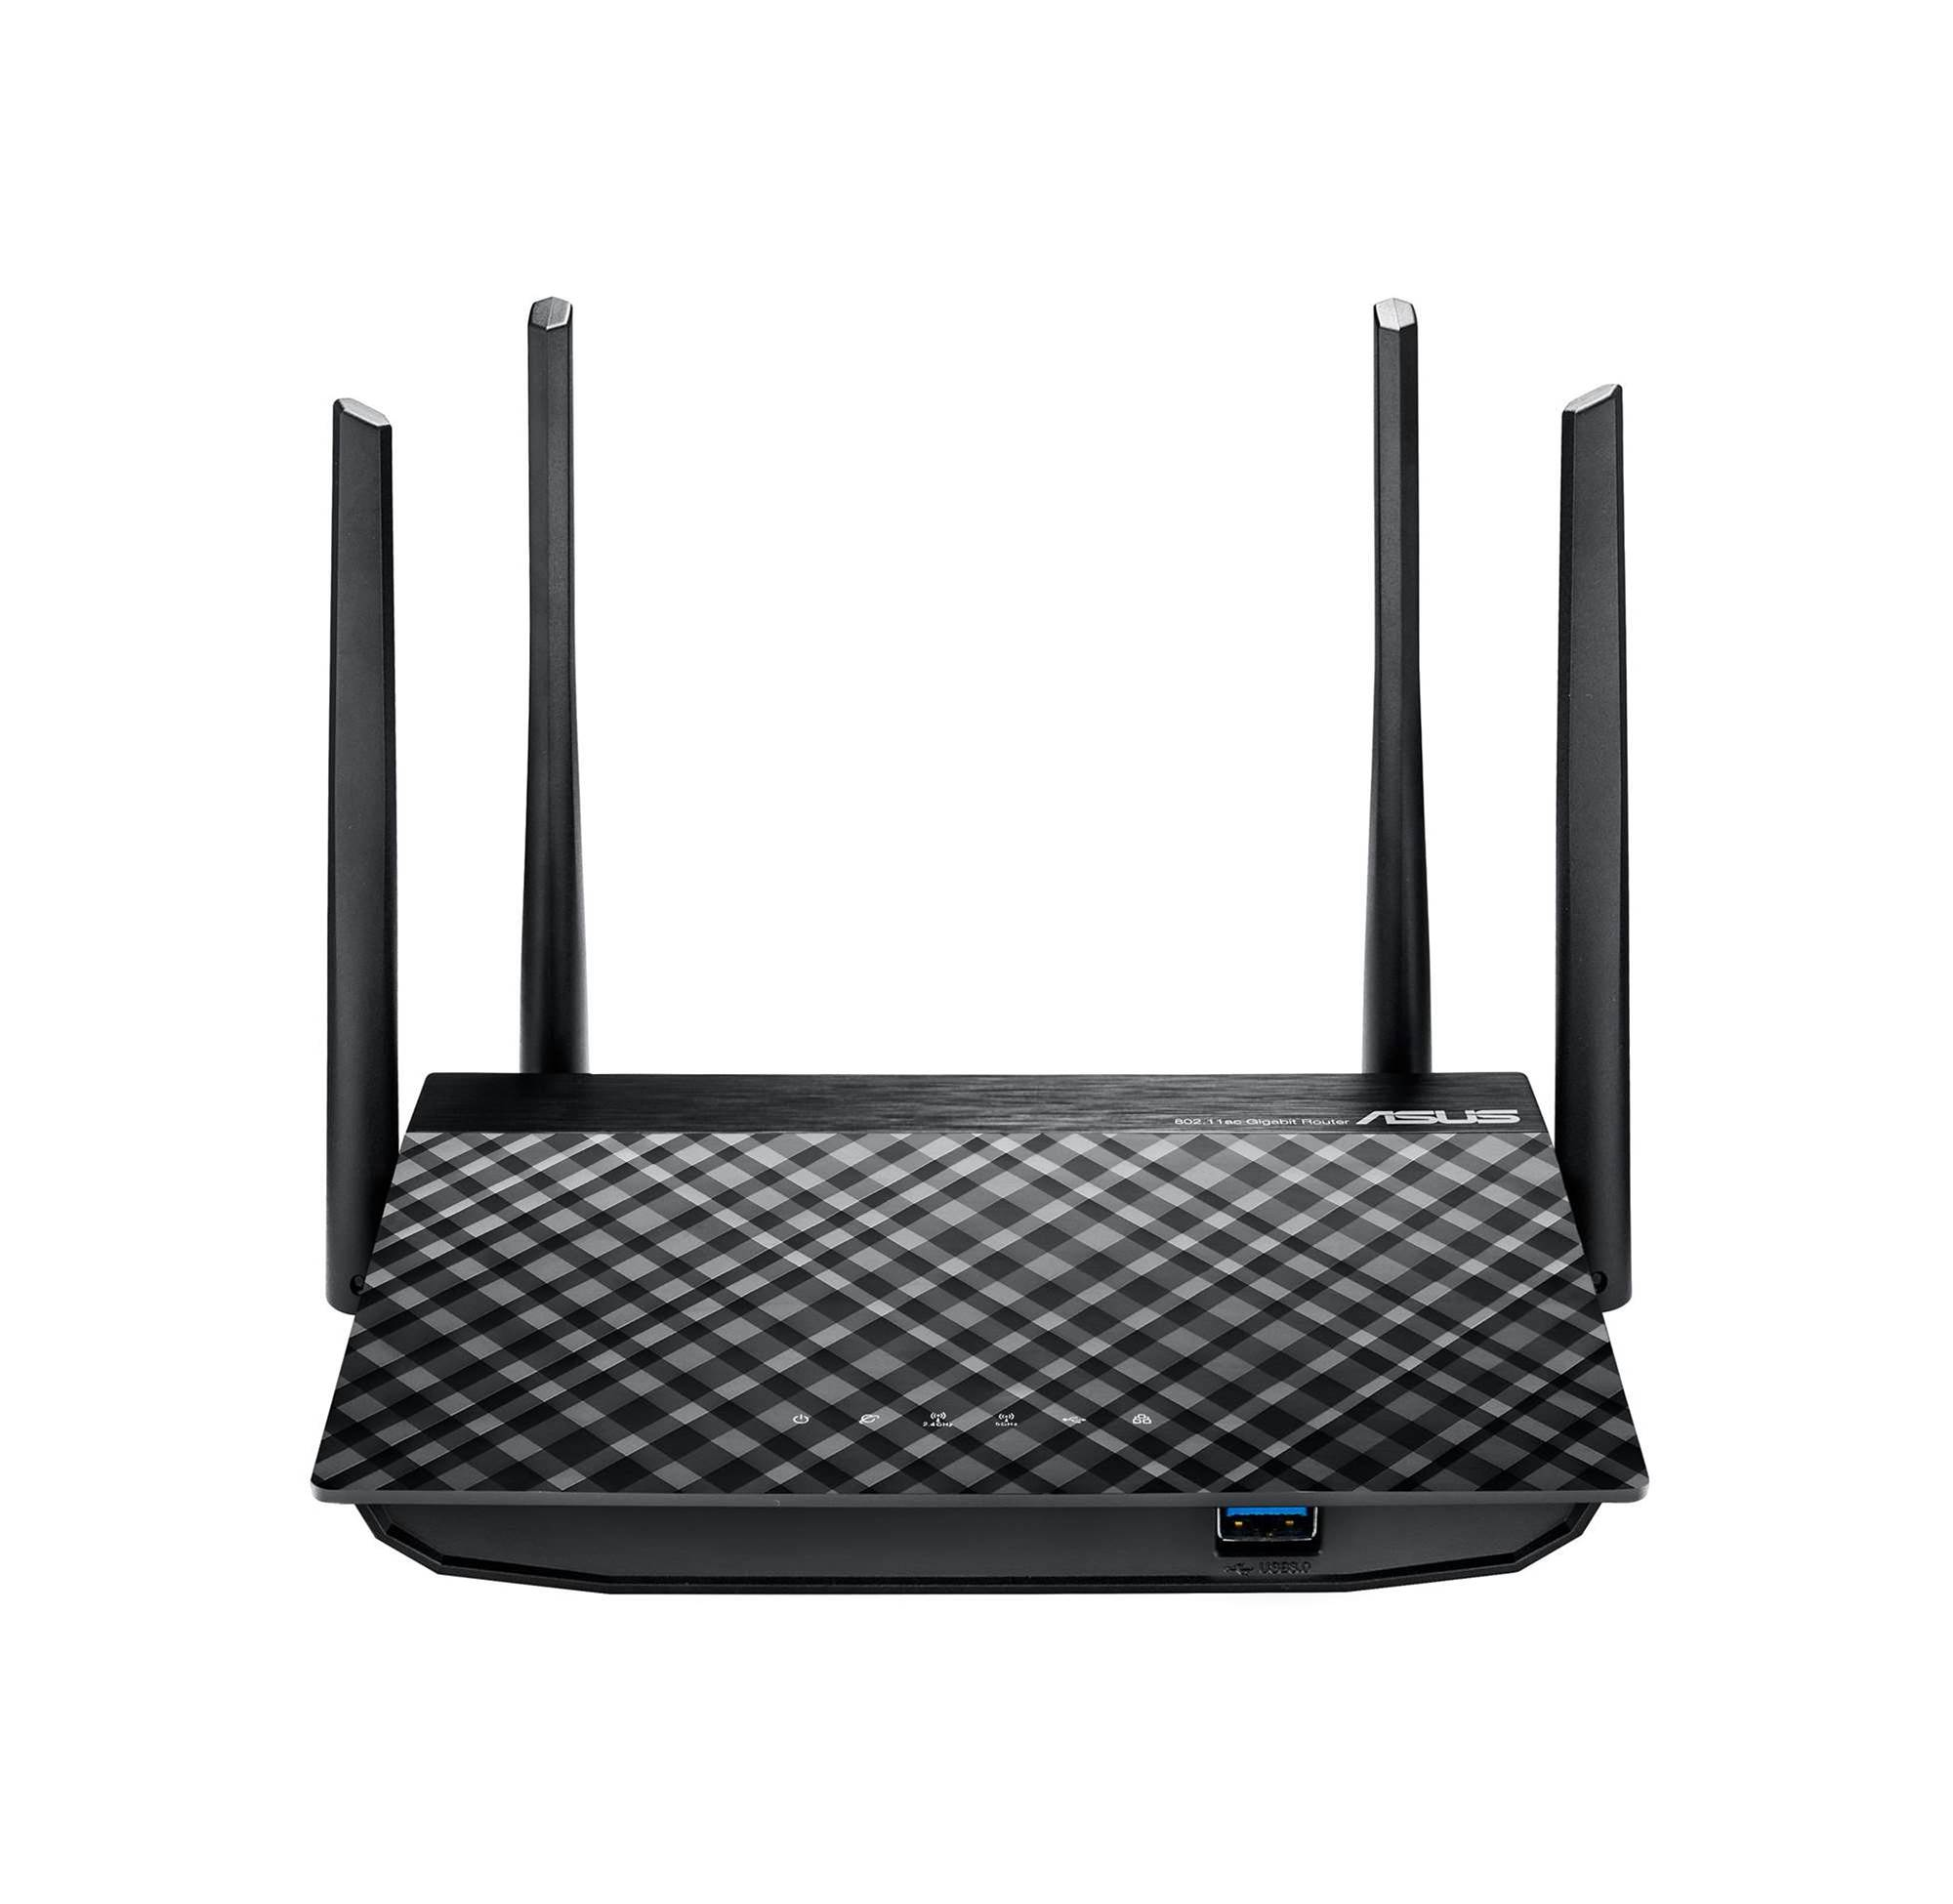 Asus launches new RT-AC58U AC1300 MU-MIMO Router